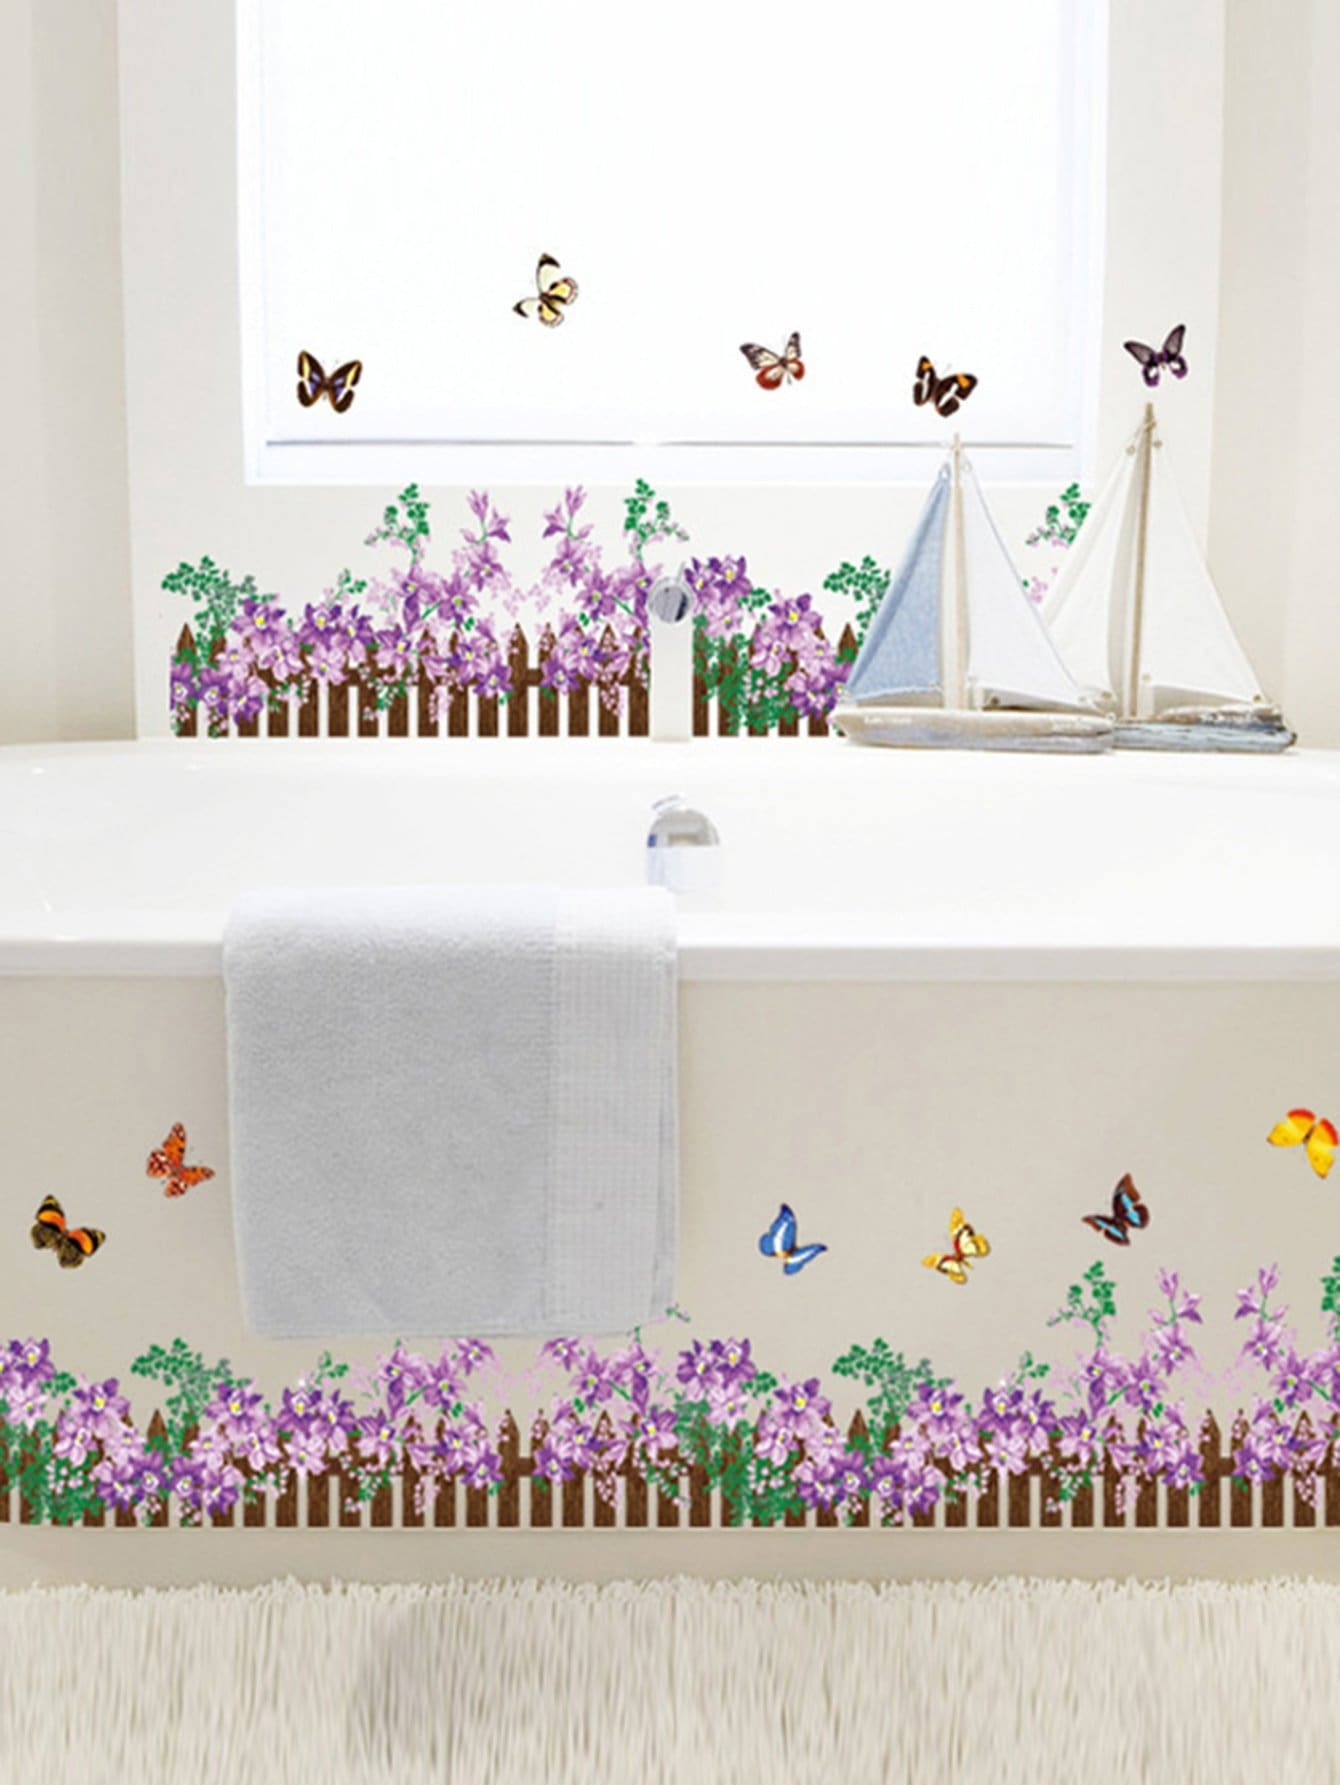 Floral Fence Wall Sticker 2 4 sqaure meters child game fence baby crawling safety fence toddler playpen baby colorful game playpen toy fence learning